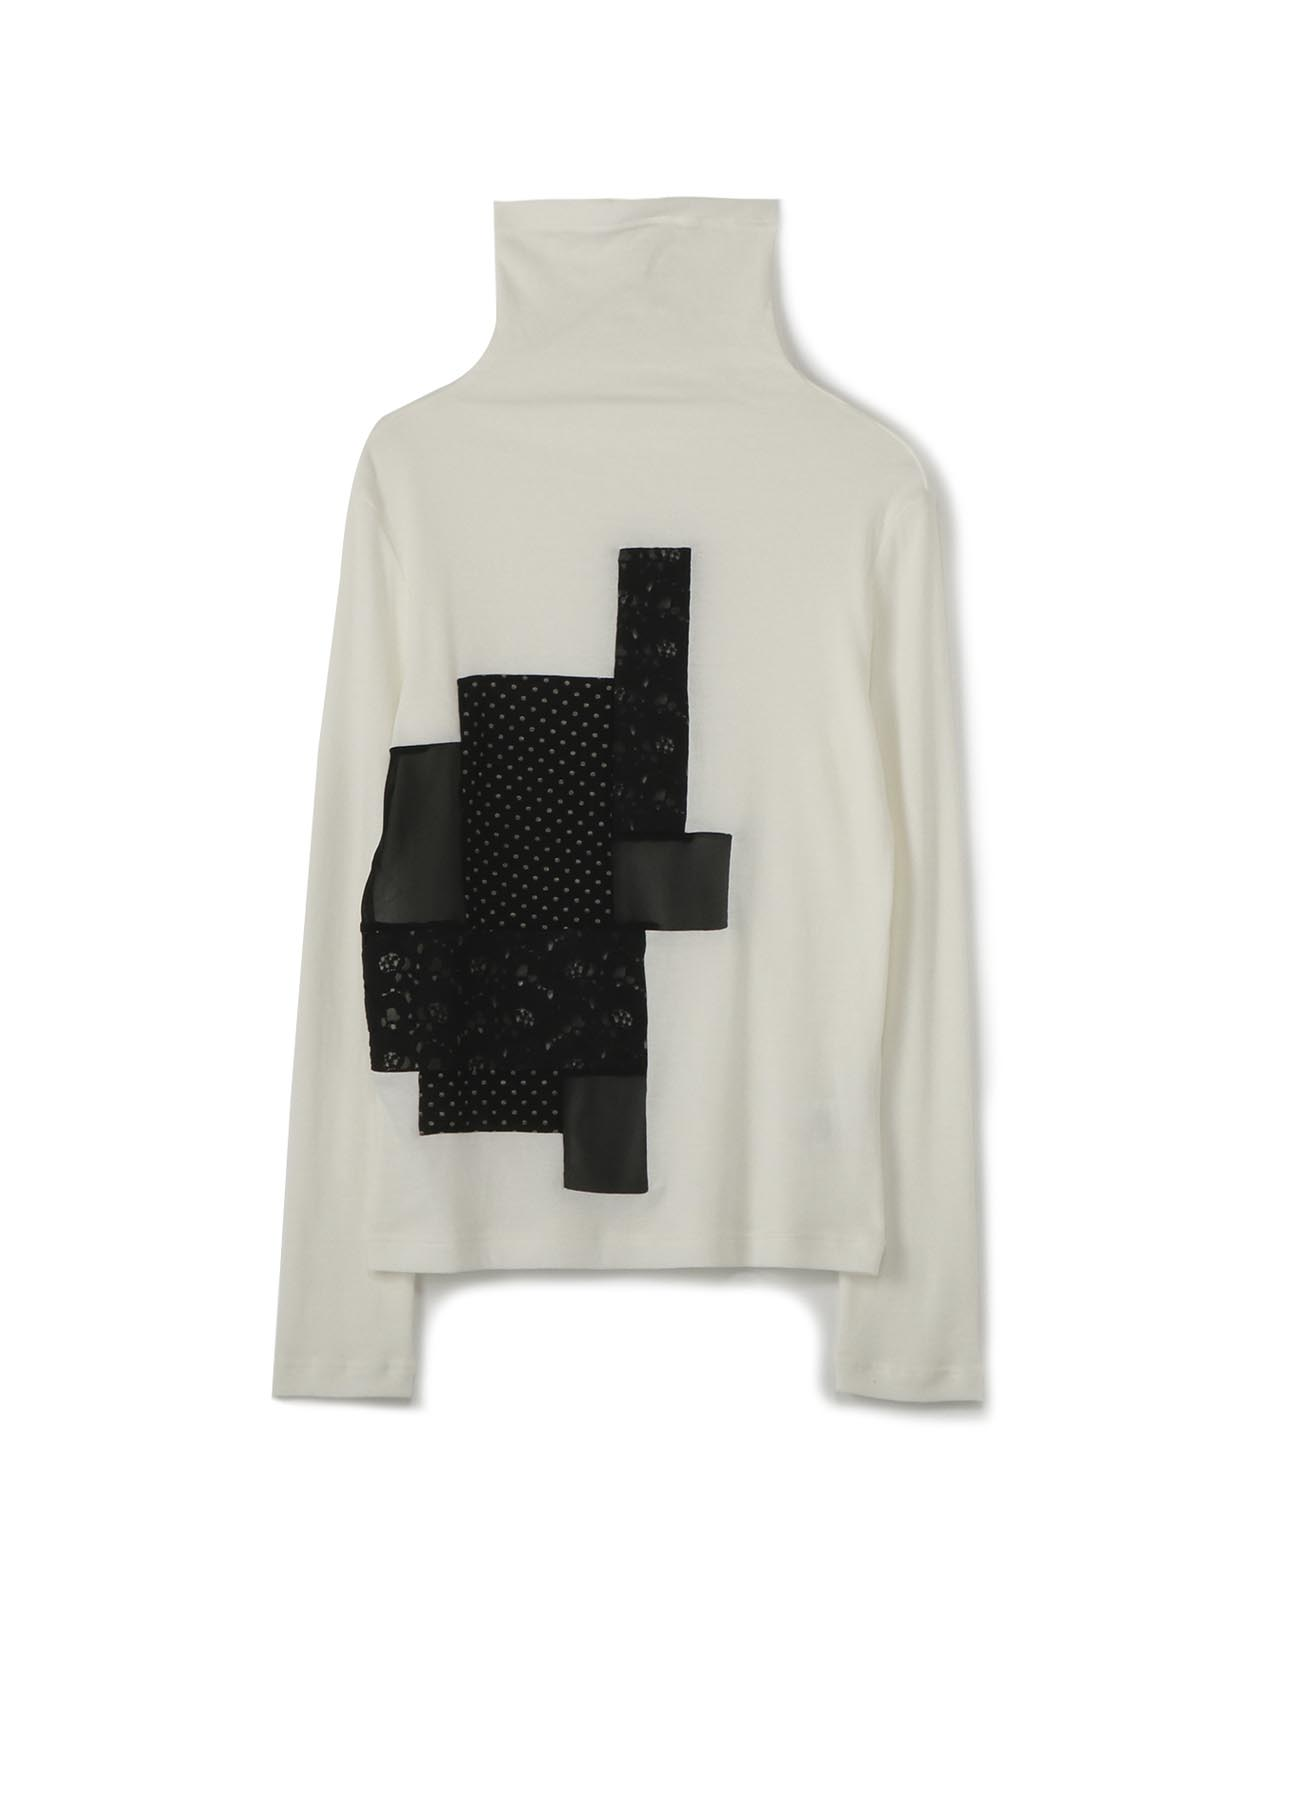 MILANORIB x PATCHWORK HIGHT-NECKED COLLAR T-SHIRT